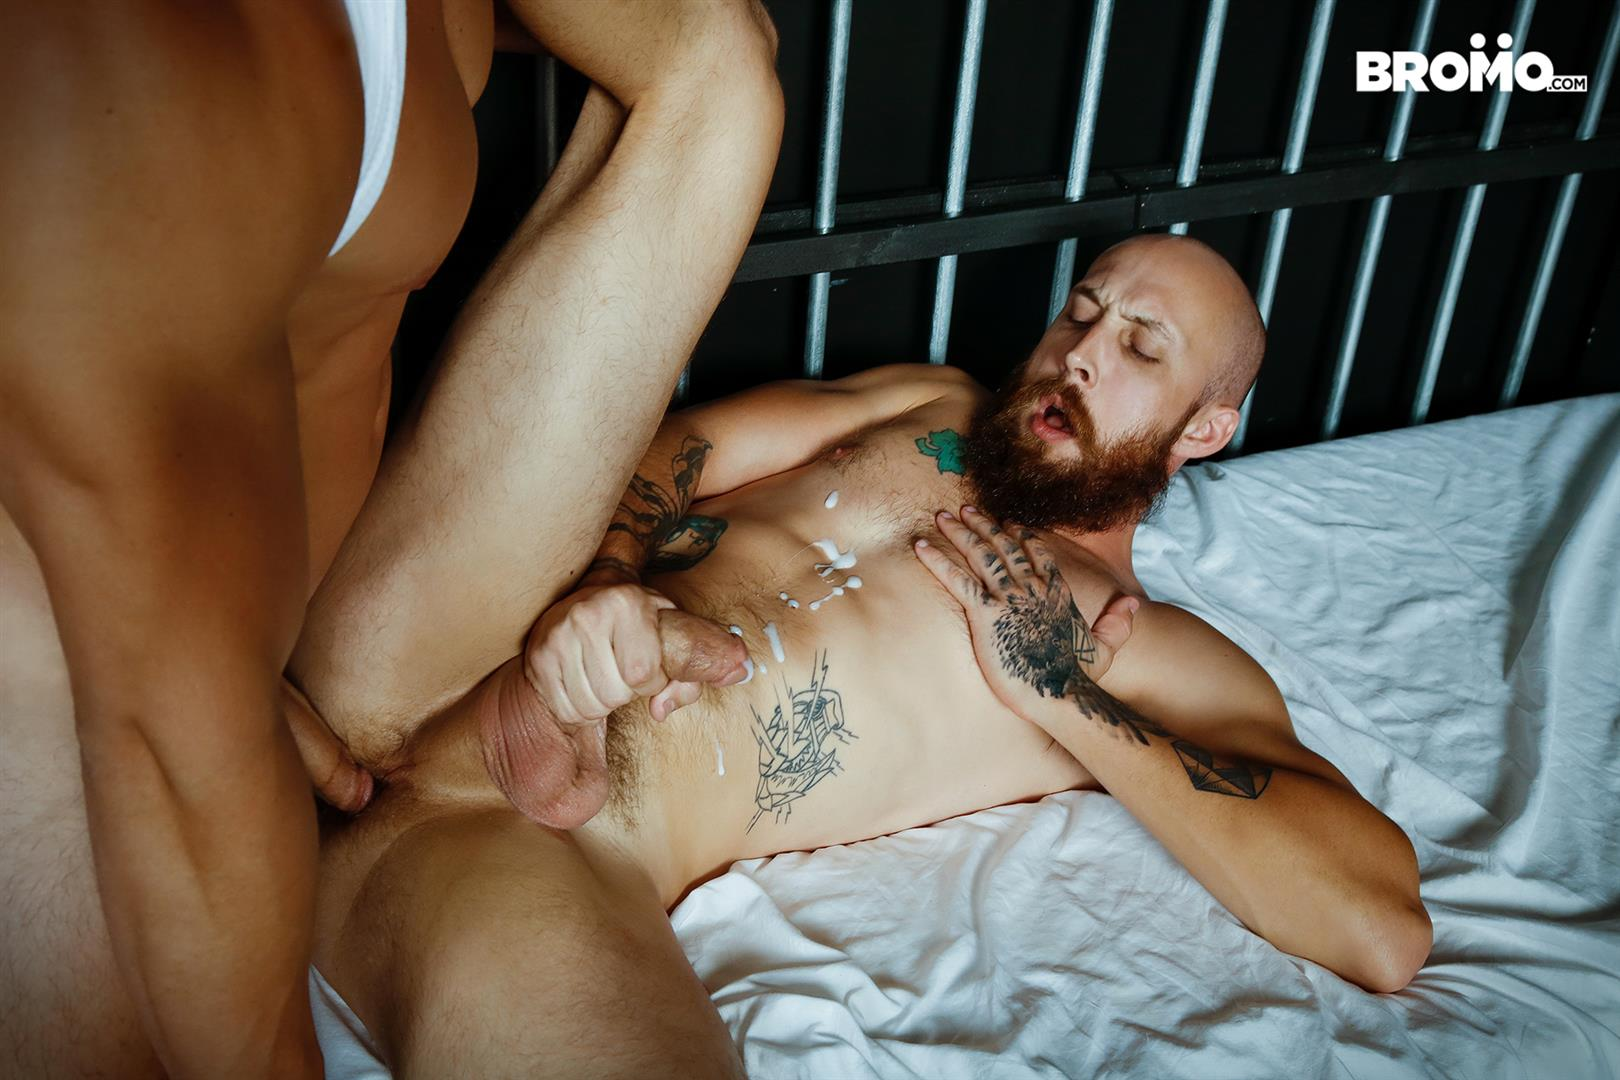 Bromo-Axel-Kane-and-Dustin-Steele-Big-Dick-Redneck-Gets-Bareback-Fucked-24 Redneck Dustin Steele Gets His Hairy Ass Barebacked By Axel Kane